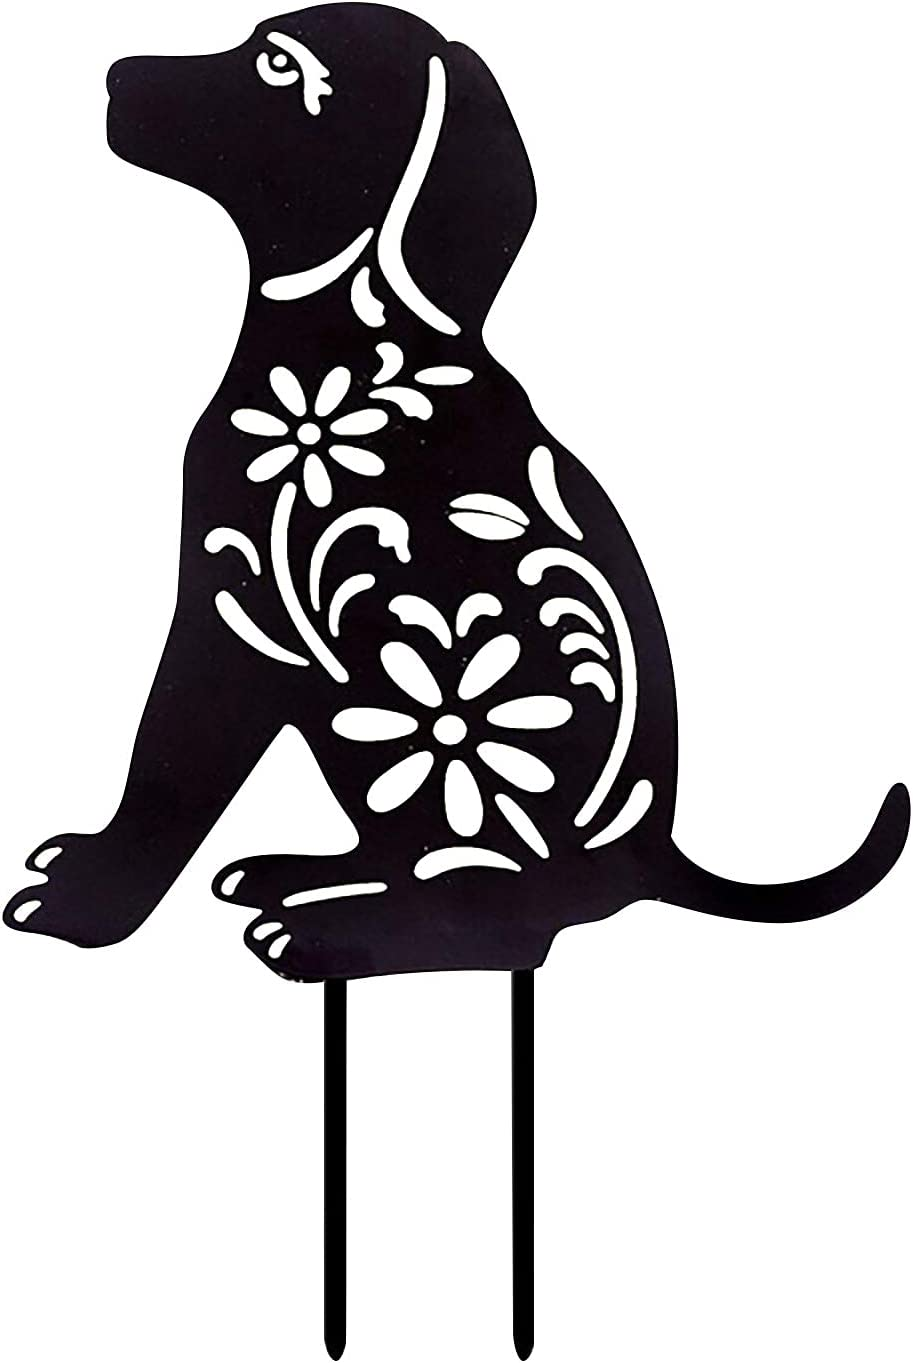 FASESH Silhouette Black Dog Metal Animal Yard Stake, Garden Decor Dog Kitten Shadow Stakes, Outdoor Wrought Iron Dog and Butterfly Style Plug-in Garden Yard Patio Decoration Ornaments